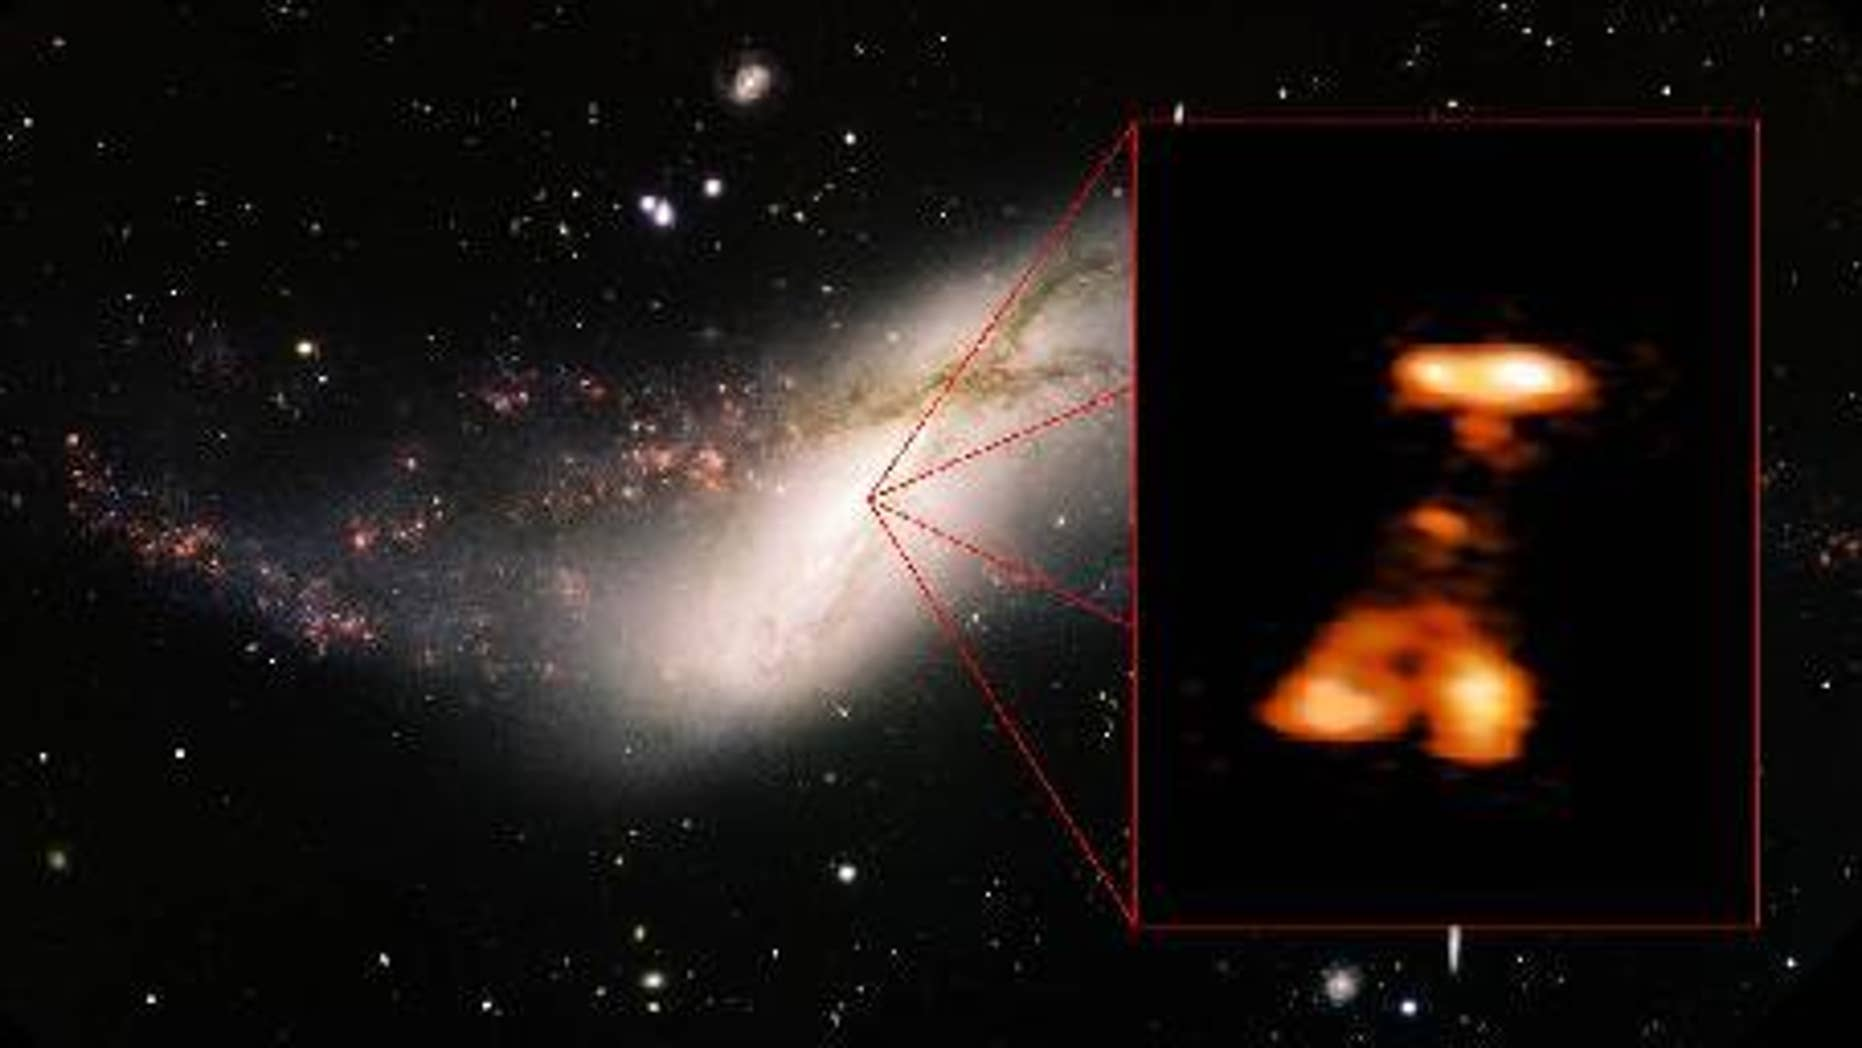 A massive outburst erupts from the giant black hole at the center of the distant galaxy NGC 660, which is 44 million light-years from Earth, in this via captured by ground-based telescopes. Image released Jan. 7, 2013.